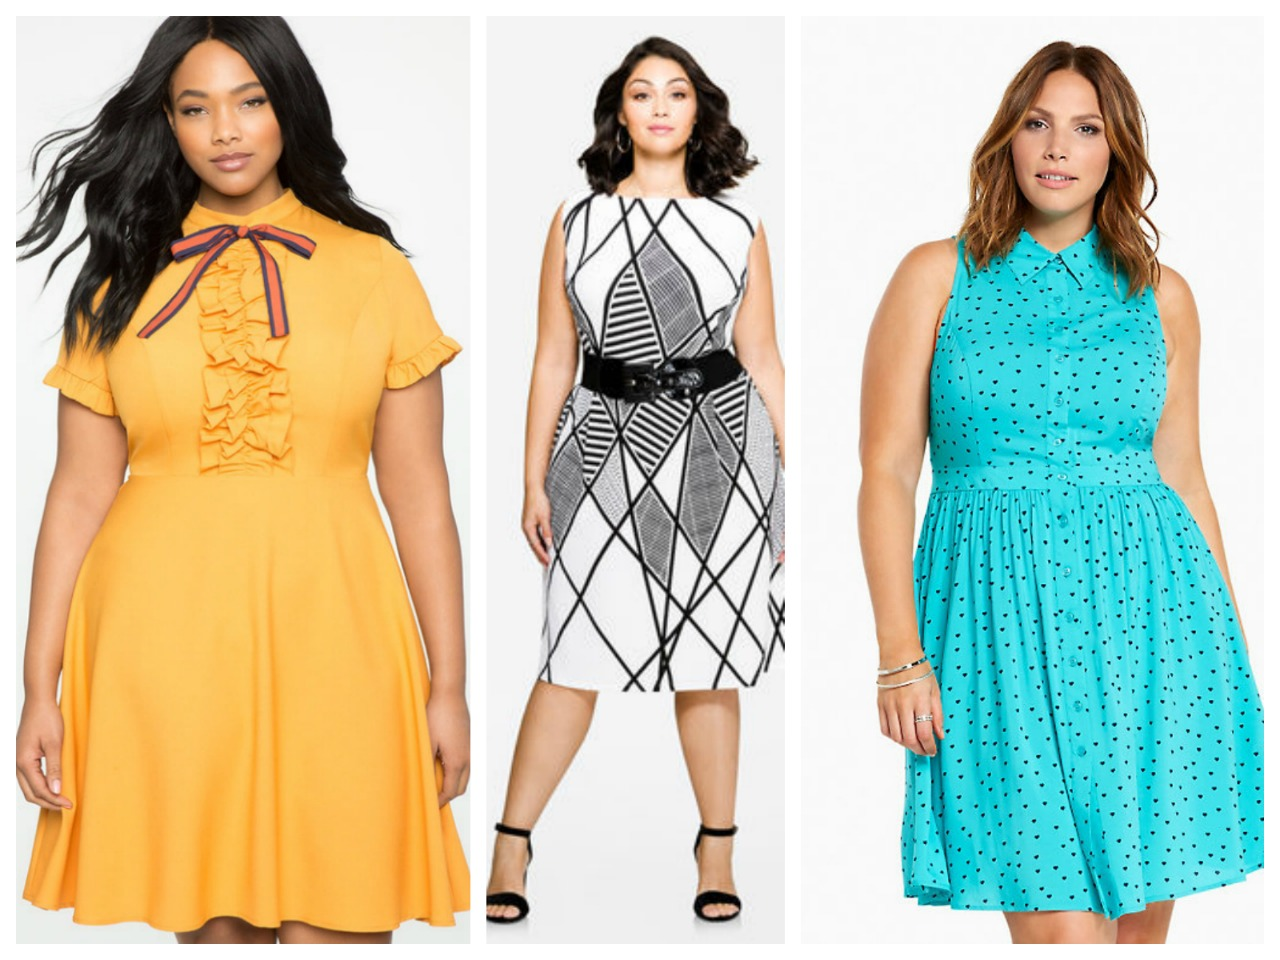 4ea9da32109 Dresses are the easiest and most simply way to inject a little flair into  your workwear. From graphic print sheath dresses to fit and flare  shirtdresses